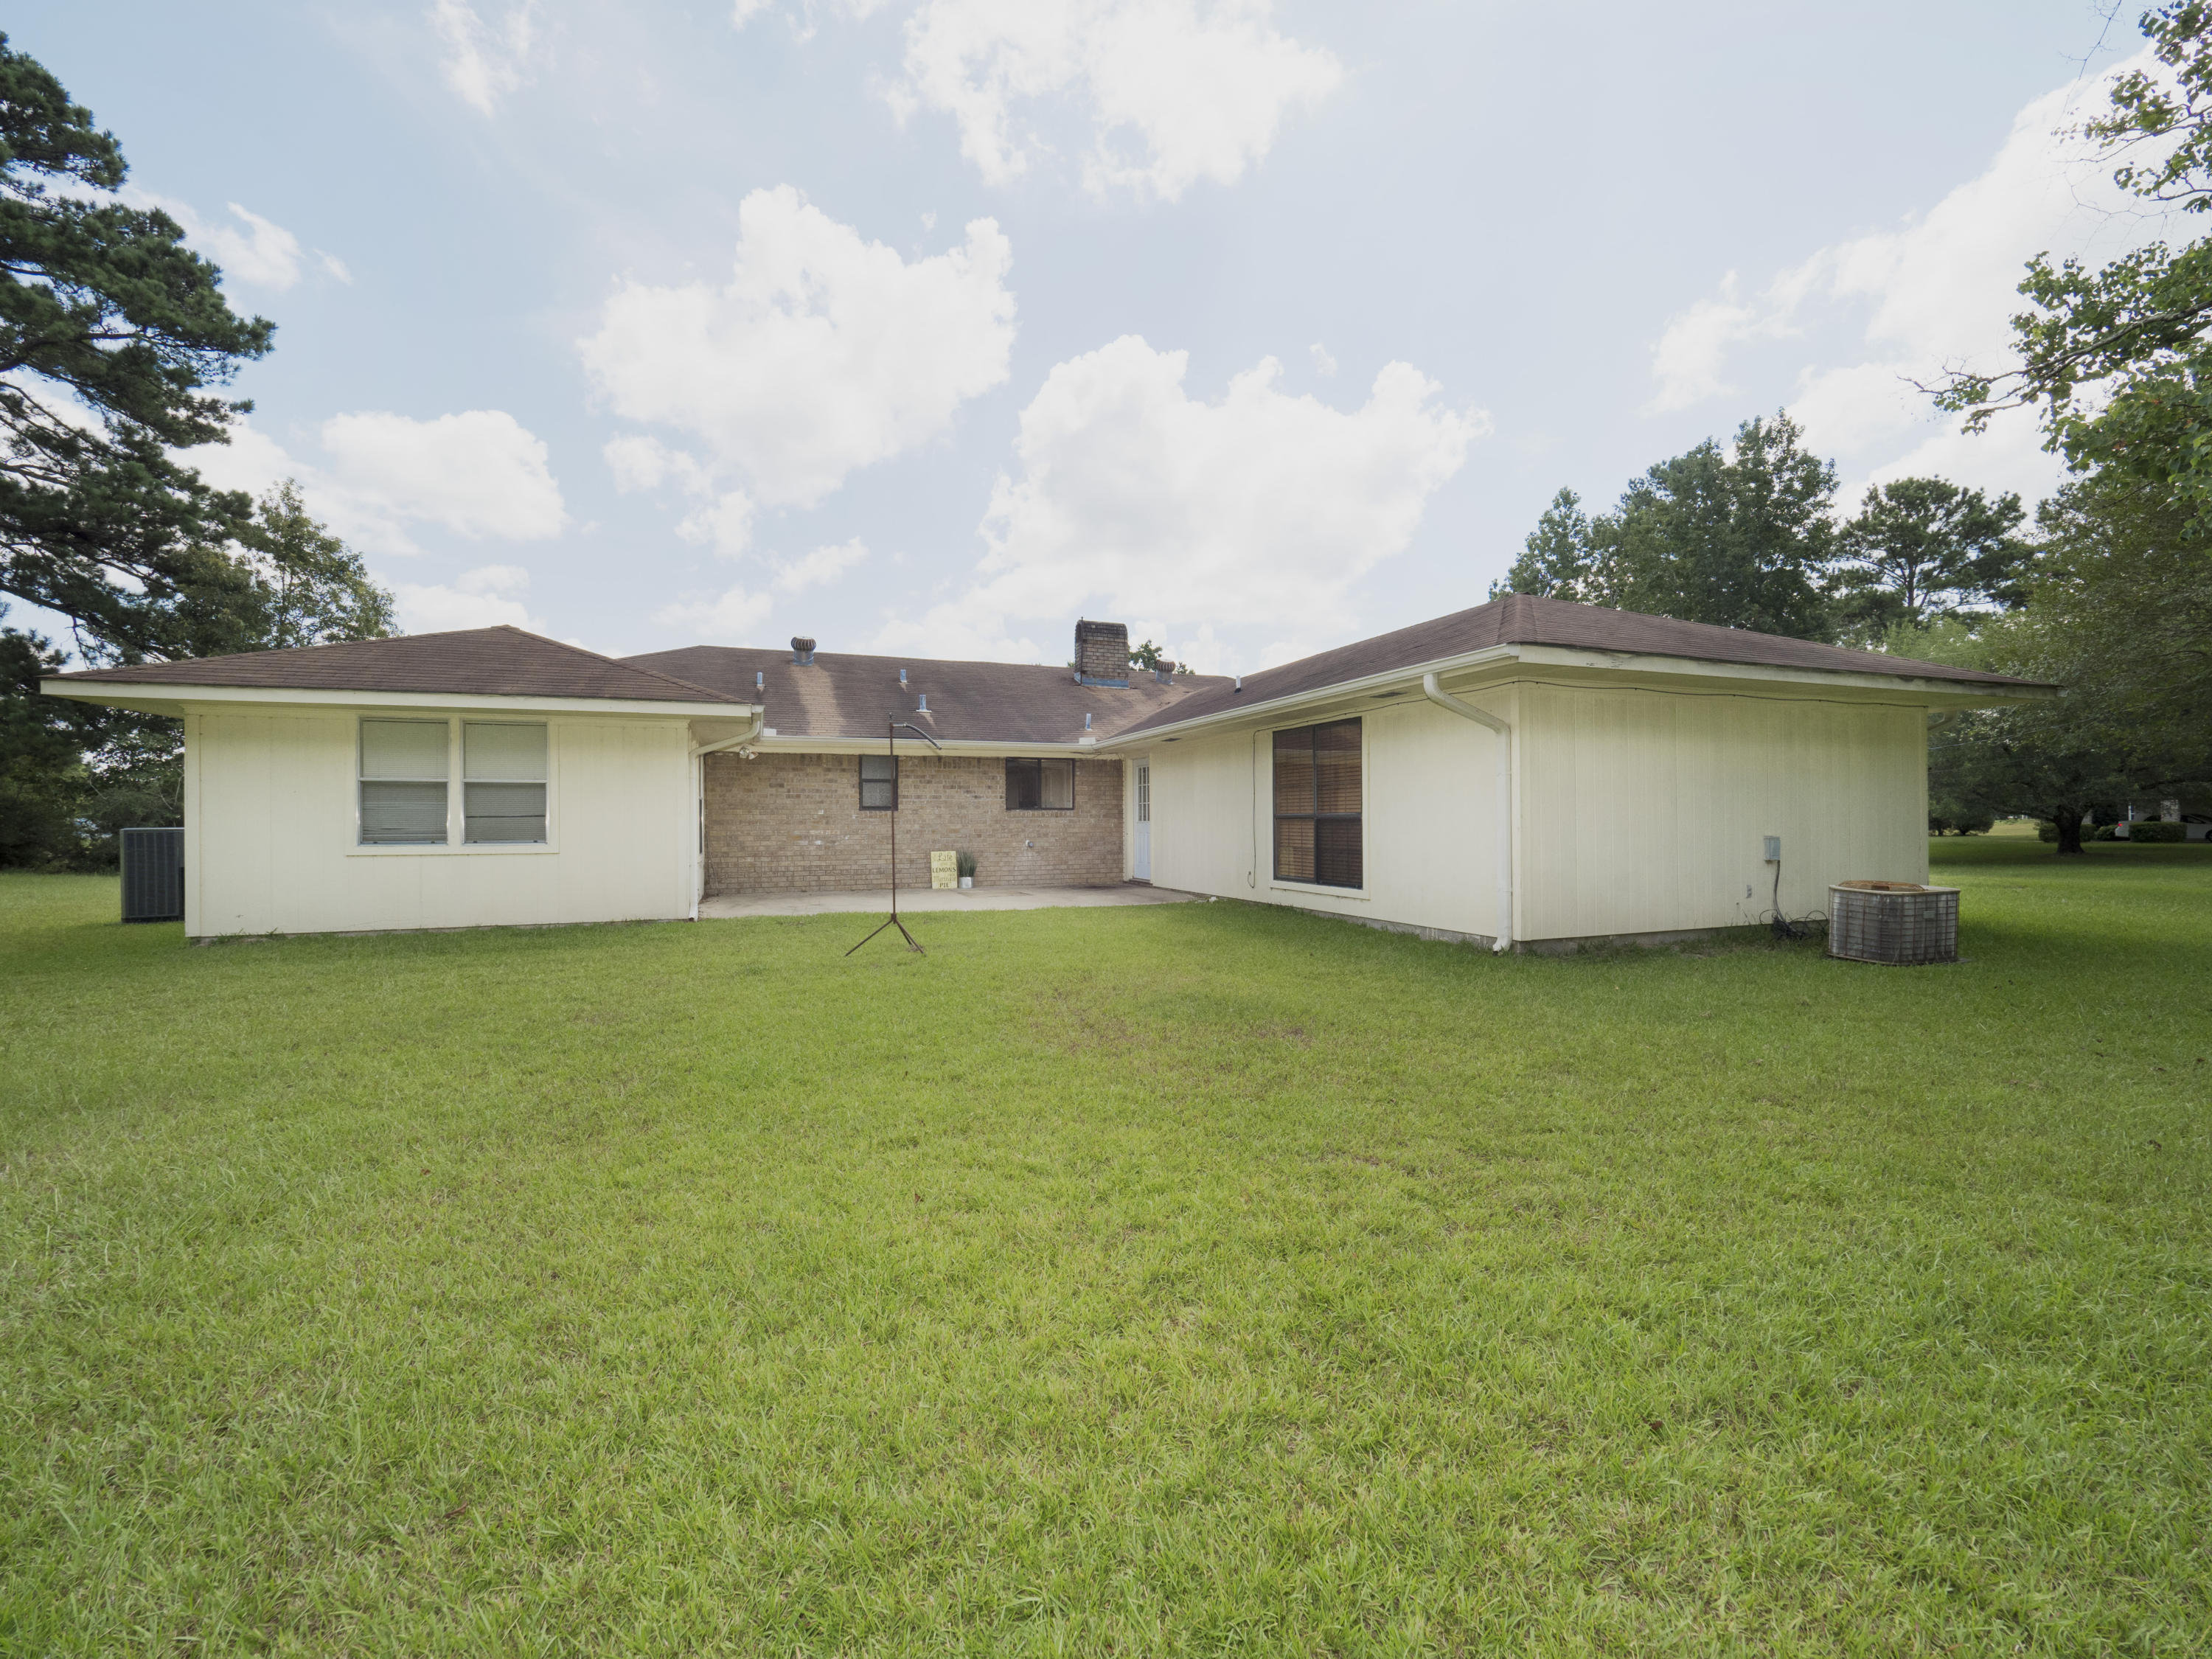 Anacoco home for sale, 3788 Main St, Anacoco LA - $172,000